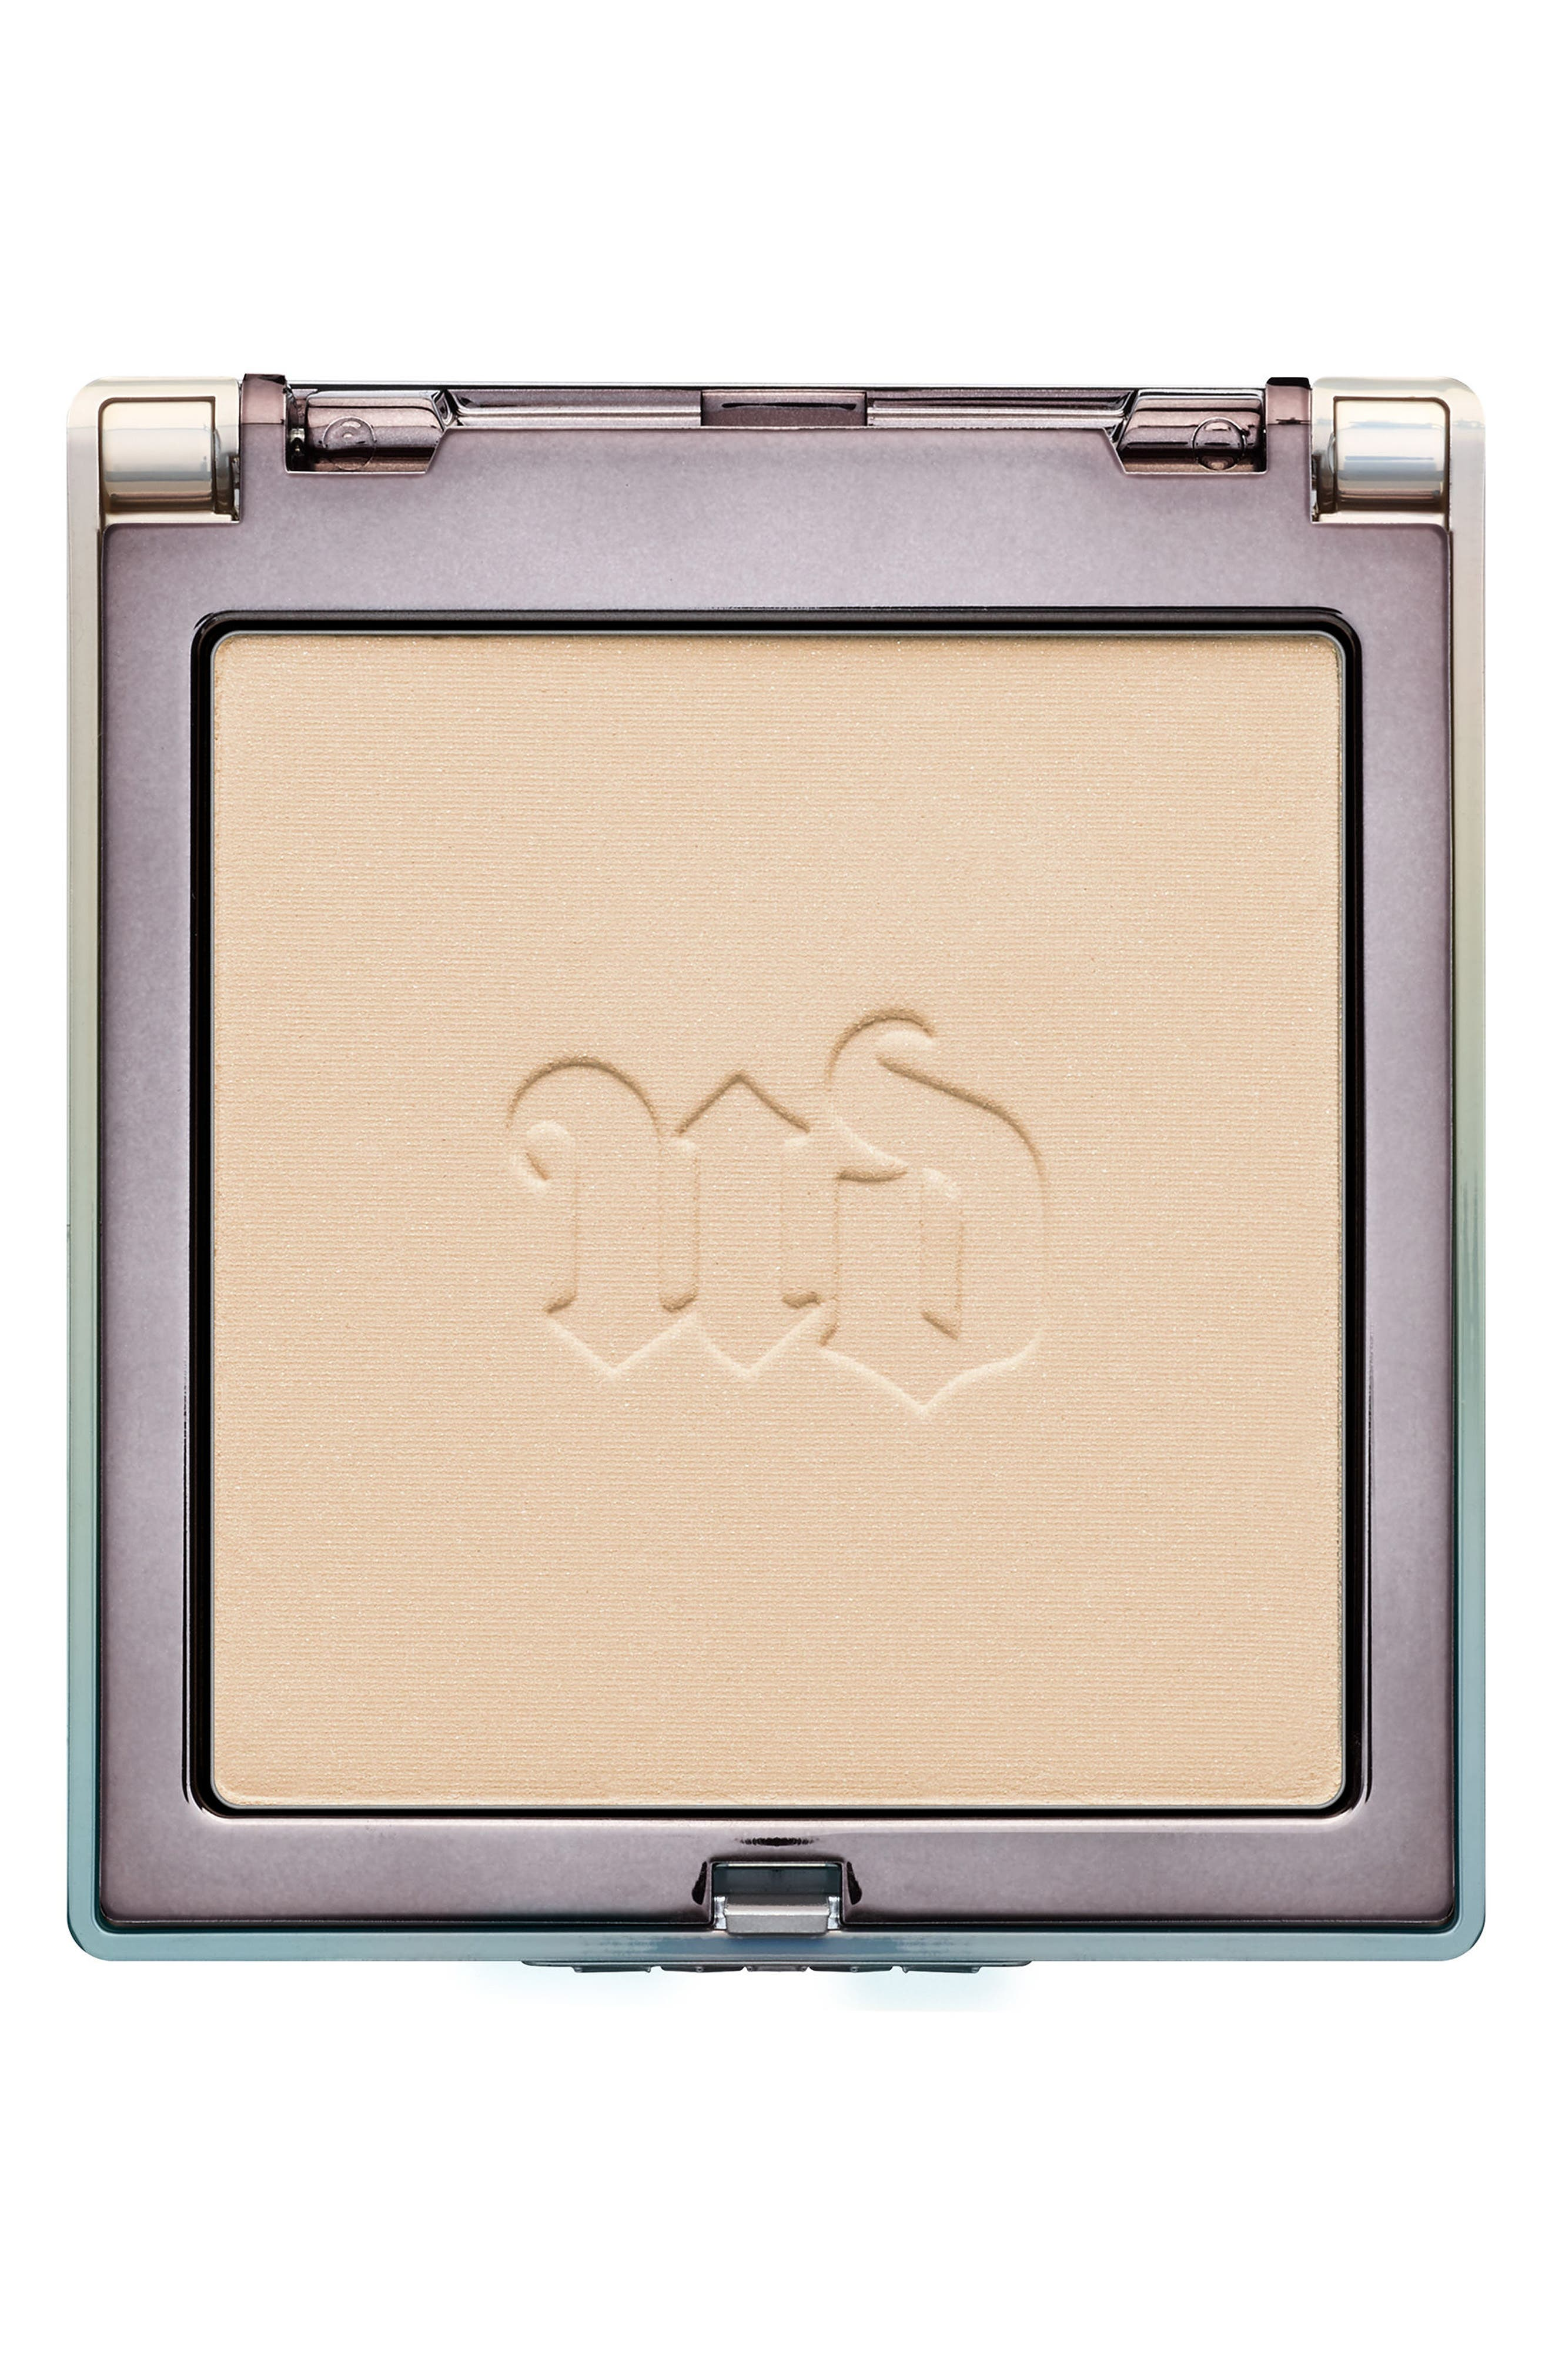 Alternate Image 1 Selected - Urban Decay Naked Skin The Illuminizer Translucent Pressed Beauty Powder